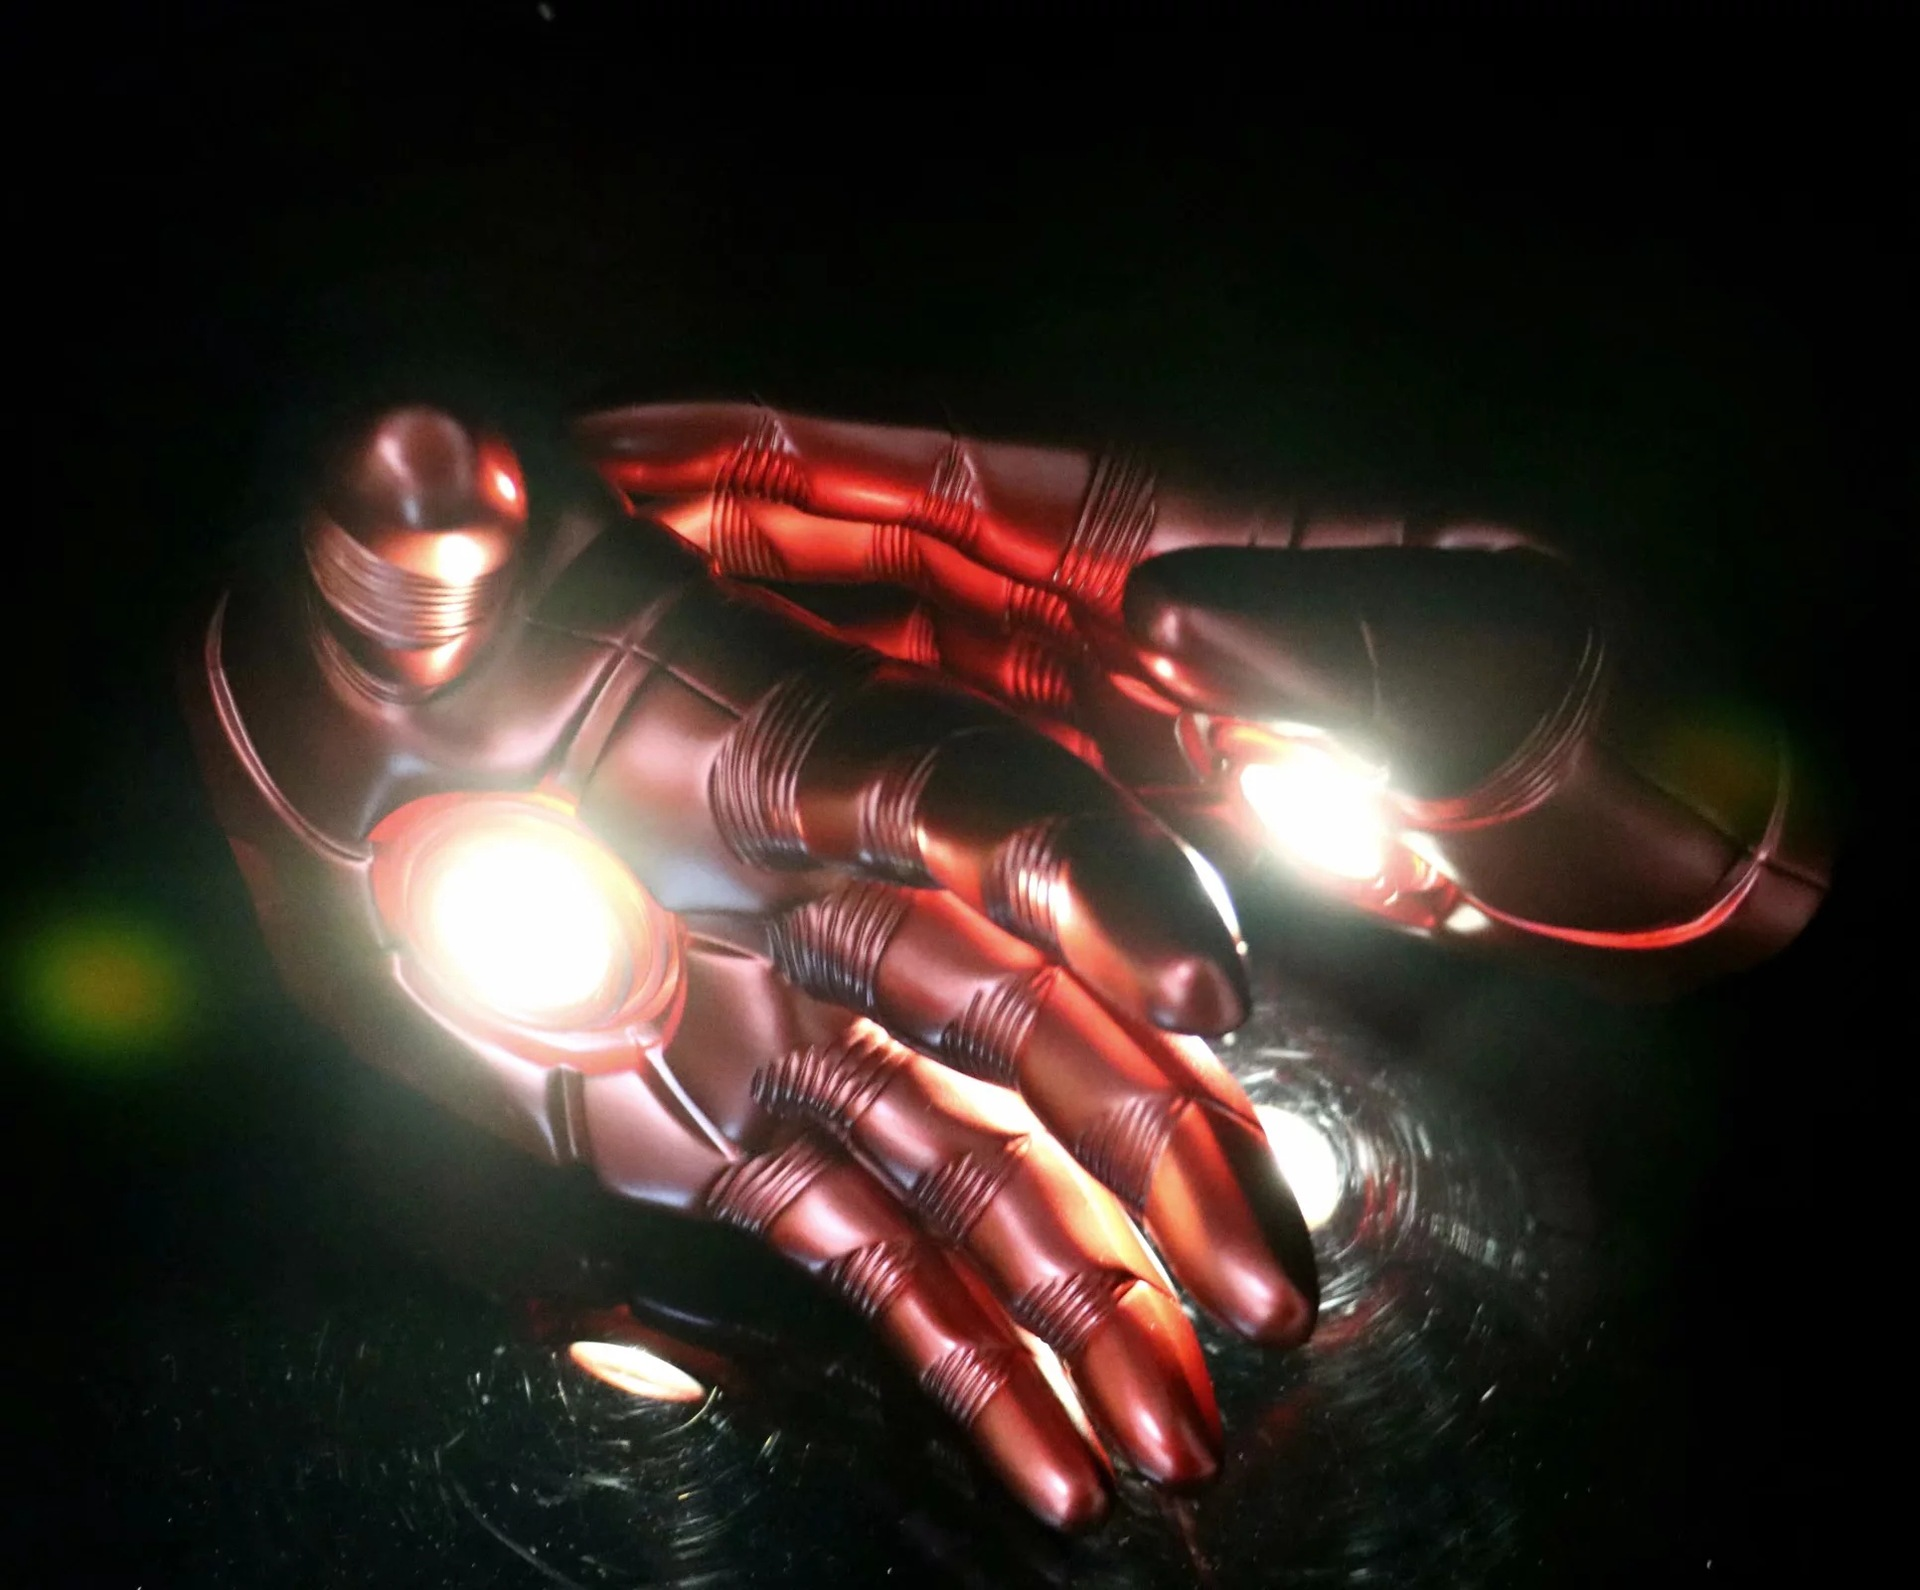 2018 Marvel Superhero Iron Man 1:1 Size Cosplay Gloves Glowing Cos Prop A pair